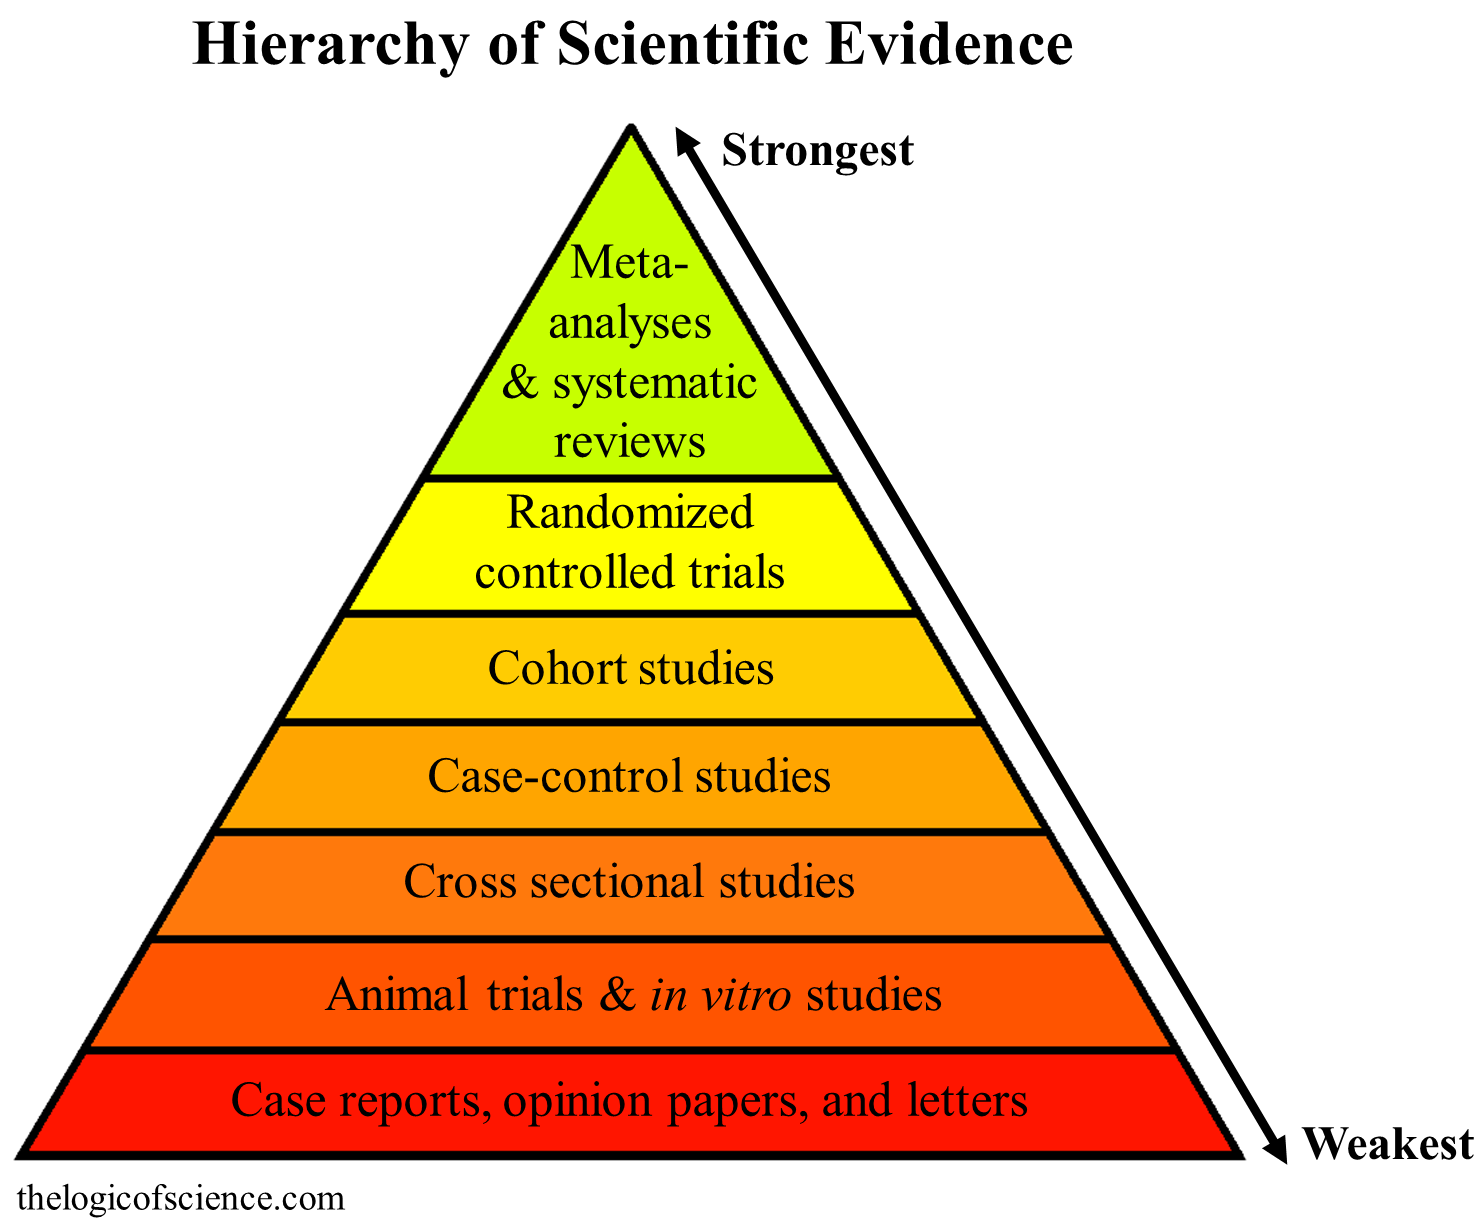 011 Research Paper Autism Conclusion Hierarchy Of Evidence No Fascinating Full